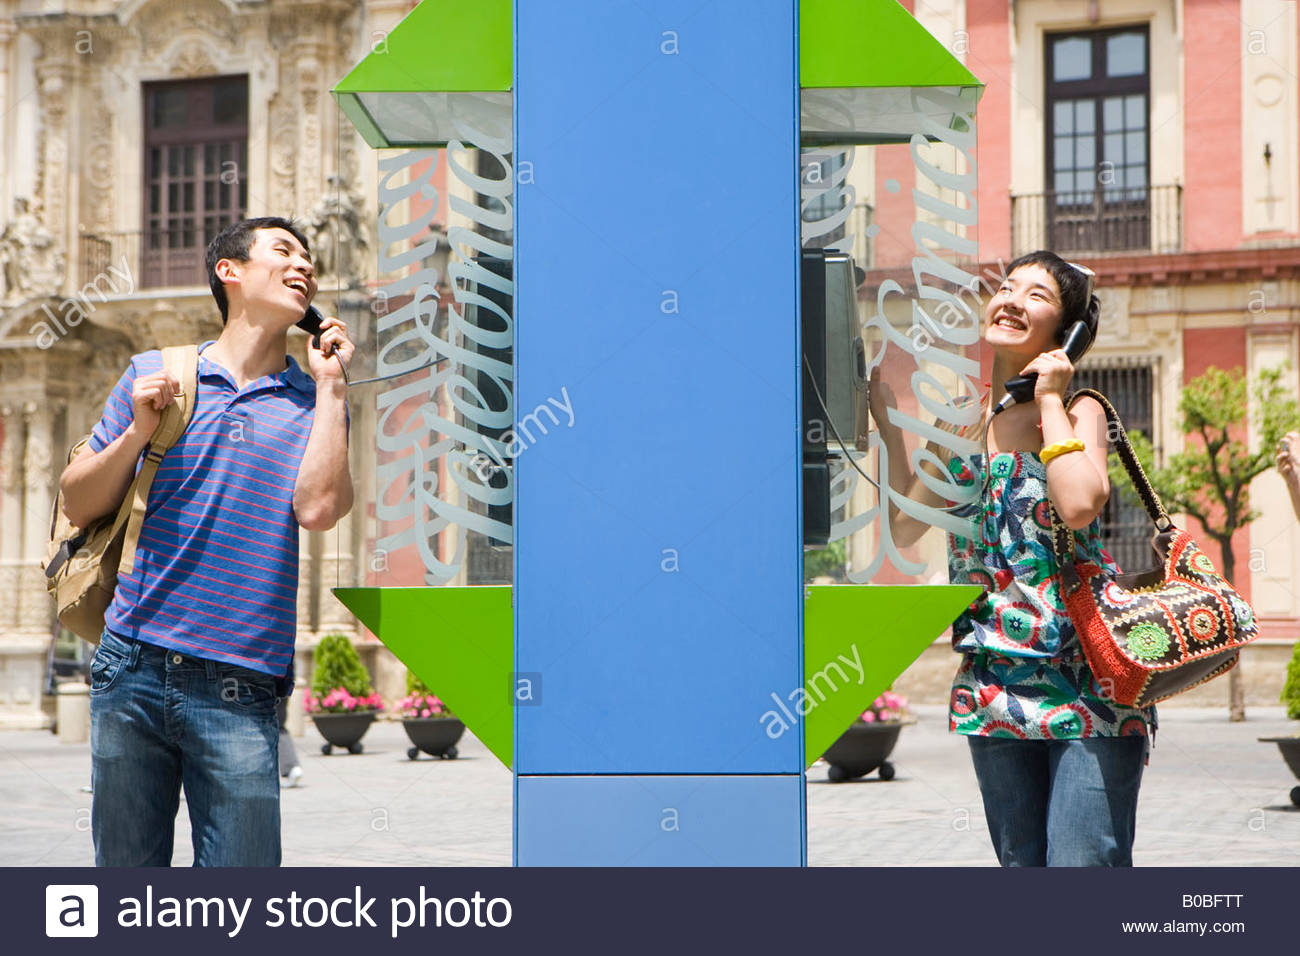 Man and woman by telephone booths using telephones, smiling - Stock Image